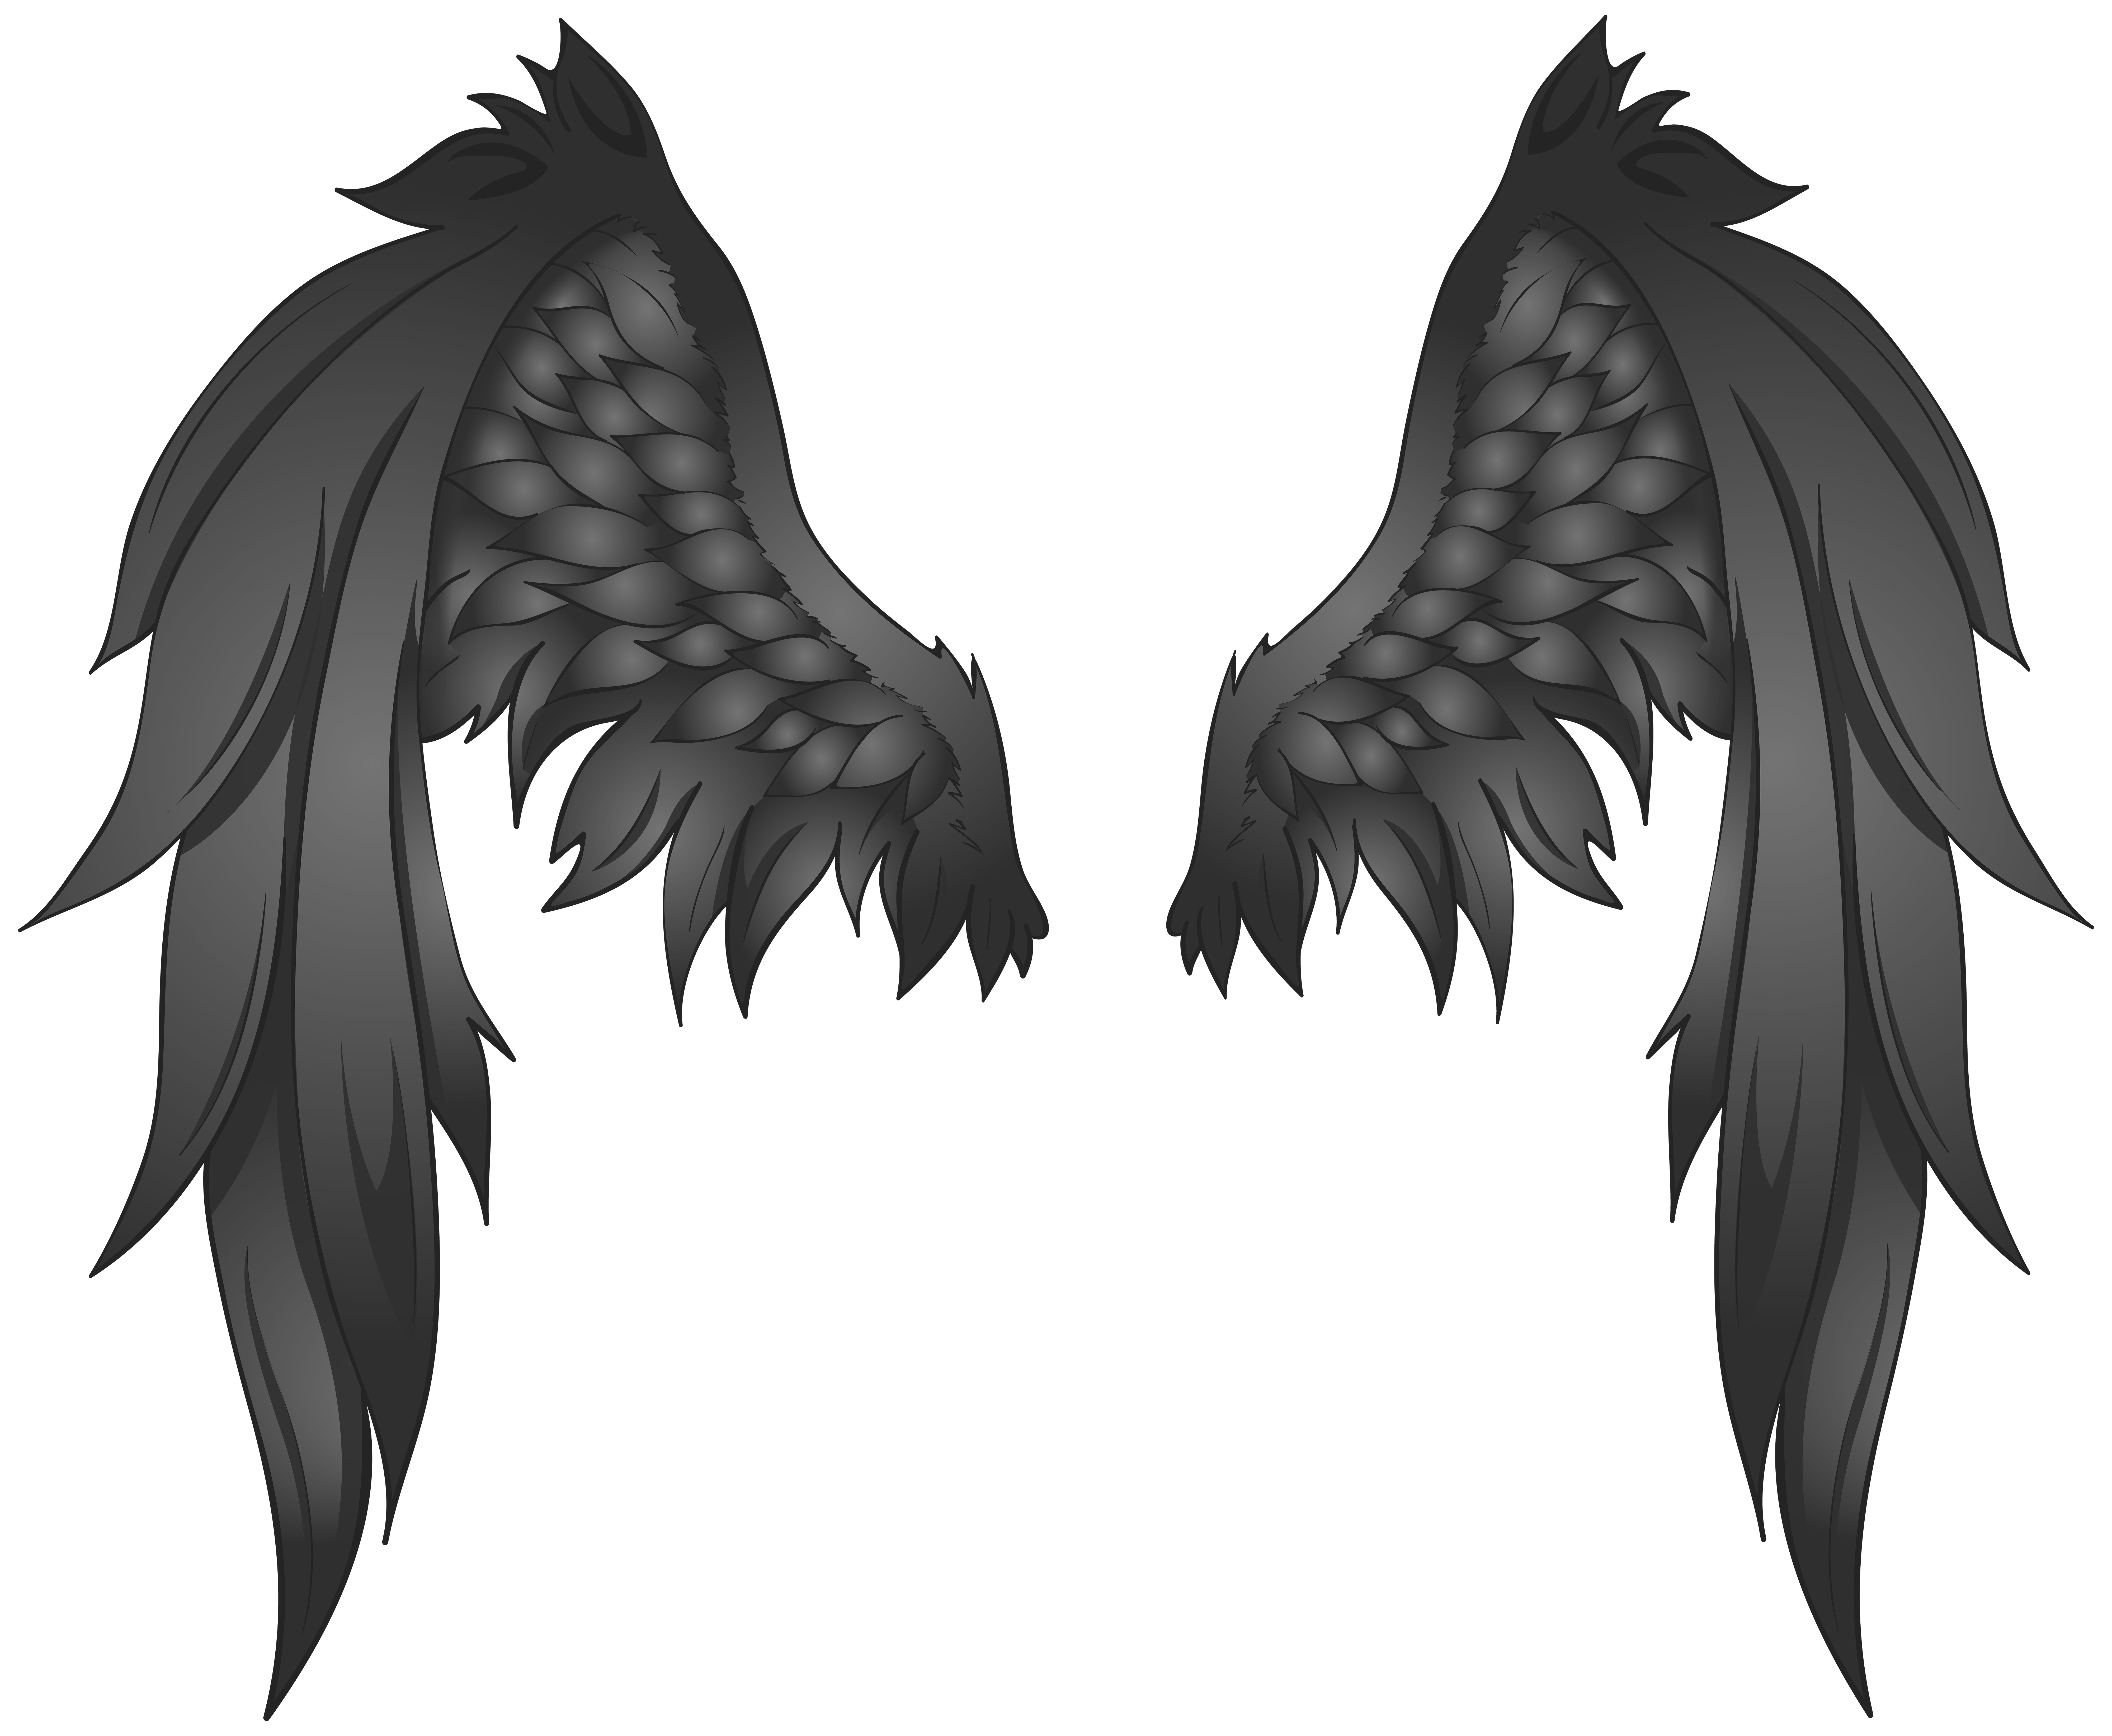 Black Wings Transparent PNG Image | Gallery Yopriceville - High ... vector transparent library